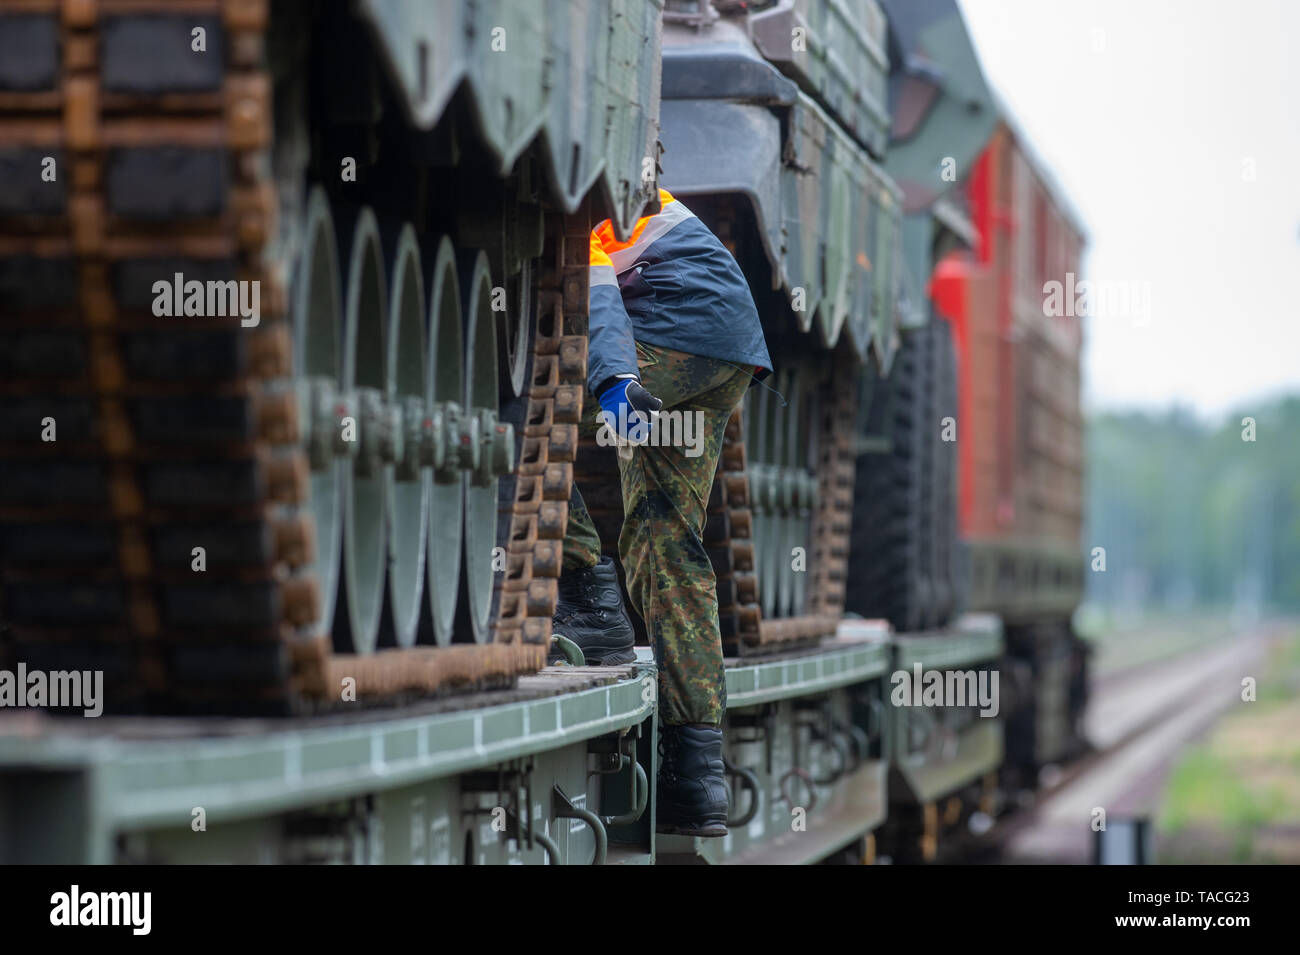 Altengrabow, Germany. 22nd May, 2019. A soldier from Logistics Battalion 171 'Saxony-Anhalt' climbs onto a wagon on which tracked vehicles were transported. The unloading of the train was part of a battalion field exercise. 600 soldiers took part in the exercise which began on 13 May 2019 and will continue until 24 May 2019. Credit: Klaus-Dietmar Gabbert/dpa-Zentralbild/ZB/dpa/Alamy Live News - Stock Image